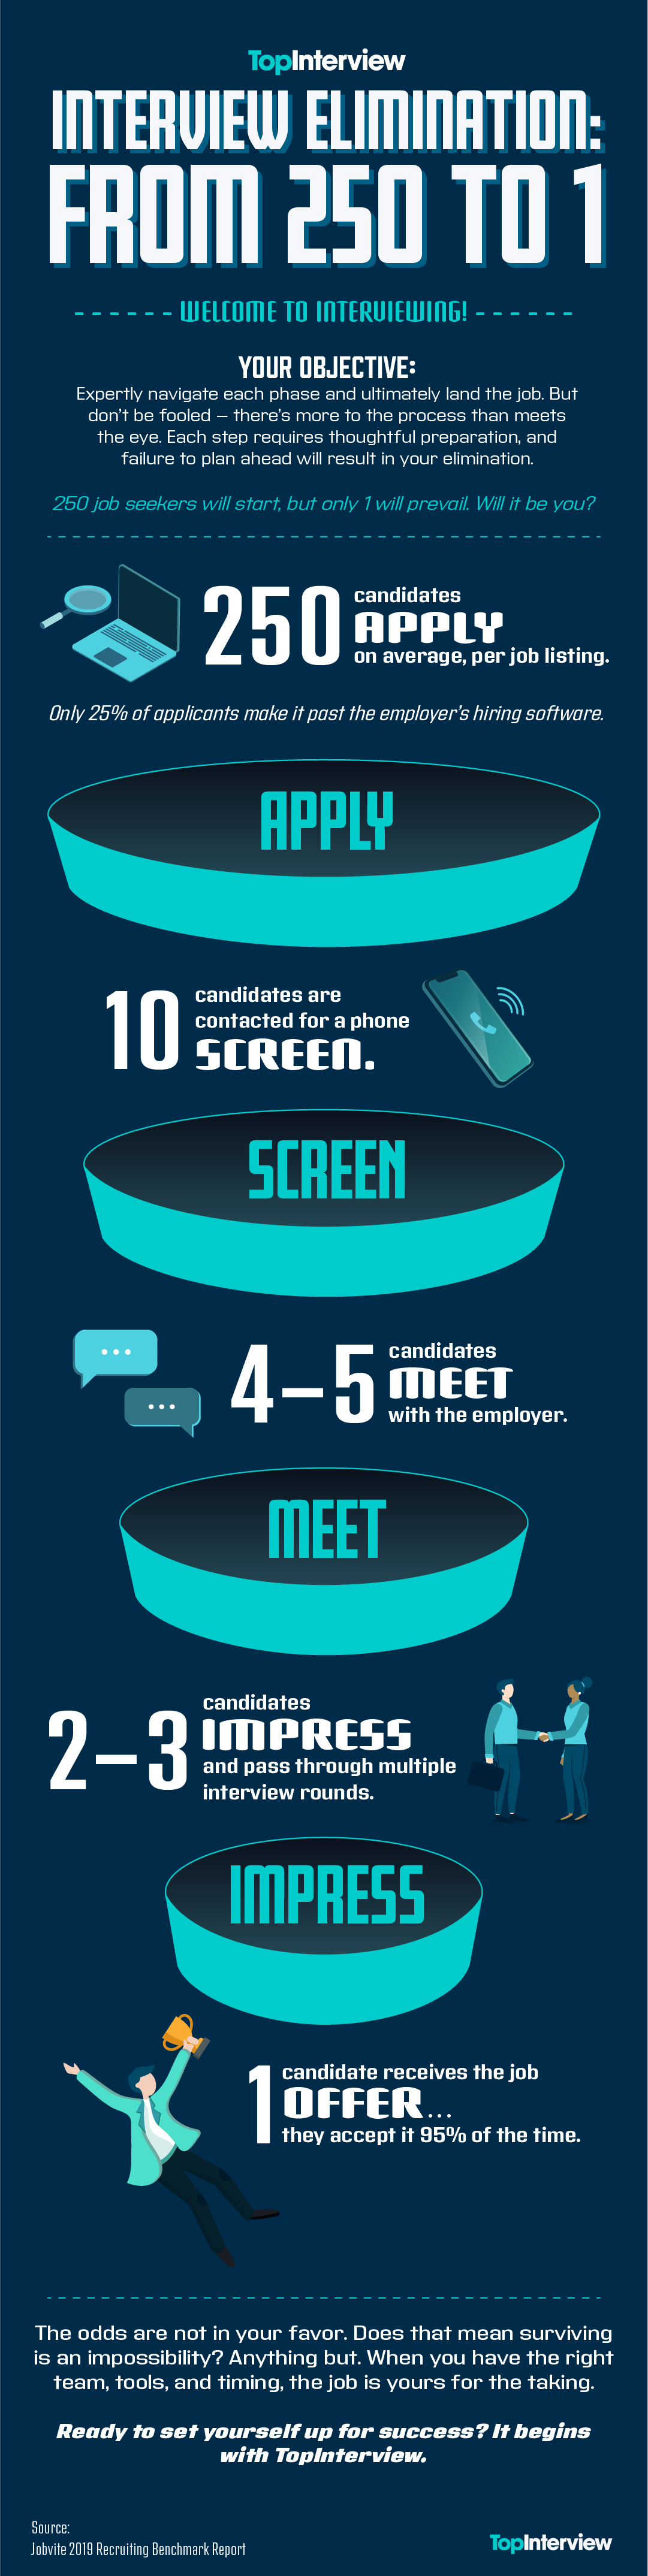 Infographic: The Interview Funnel Explained and how to be the last candidate standing